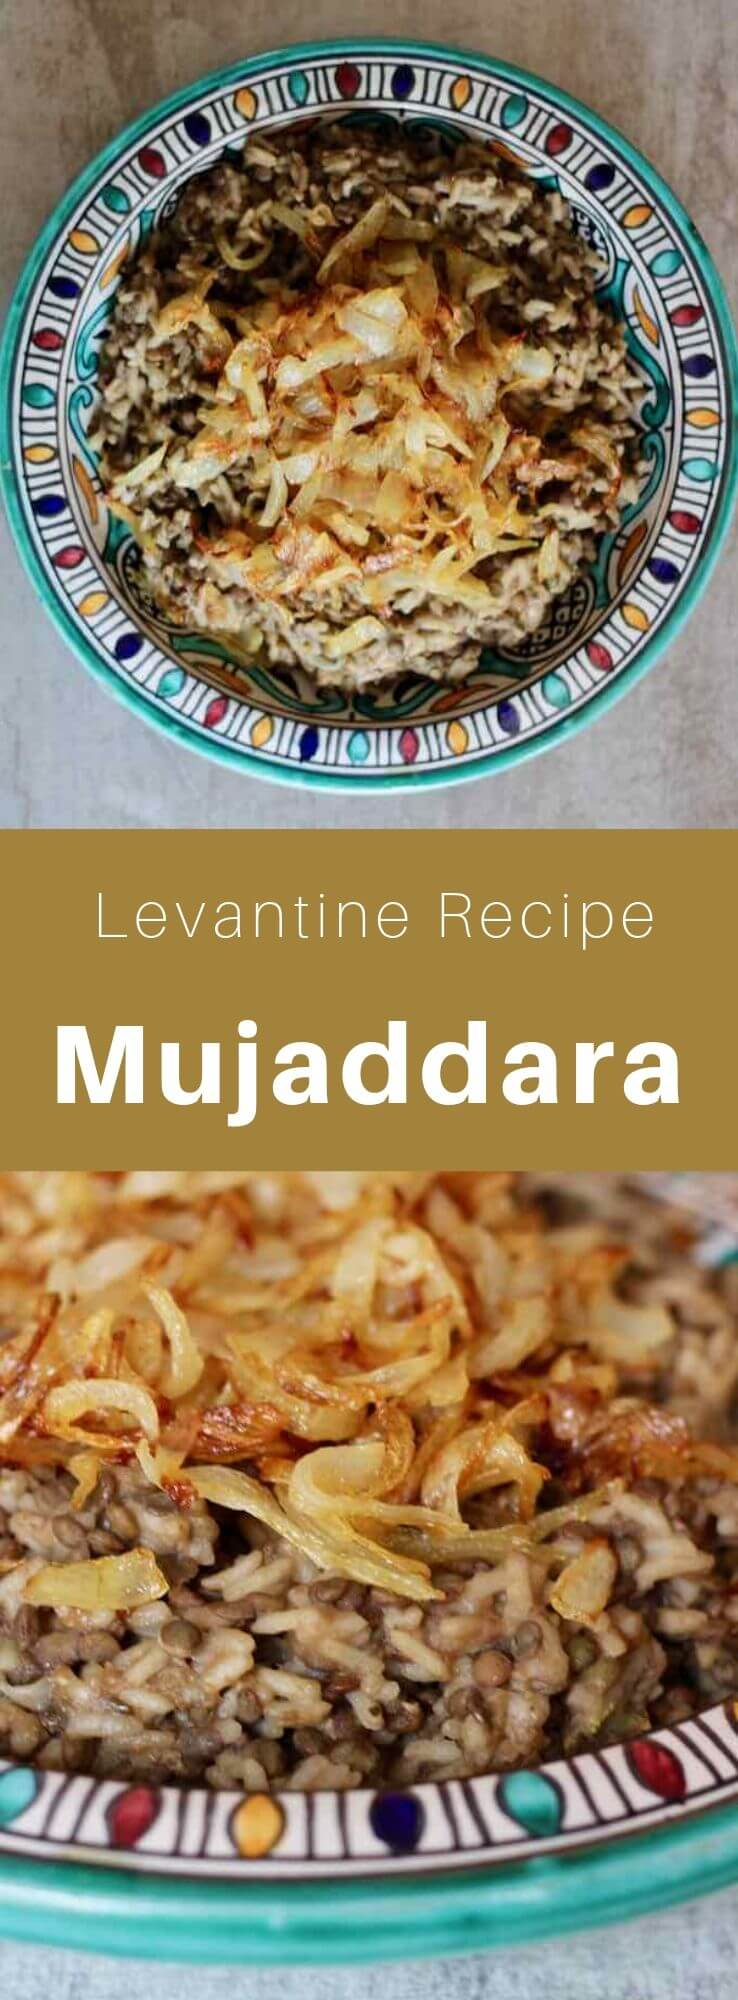 Mujaddara is a traditional Middle Eastern dish made with lentils cooked with rice, bulgur or wheat, garnished with onions fried in olive oil. #MiddleEasternCuisine #MiddleEasternRecipe #MiddleEasternFood #ArabCuisine #ArabRecipe #ArabFood #WorldCuisine #196flavors